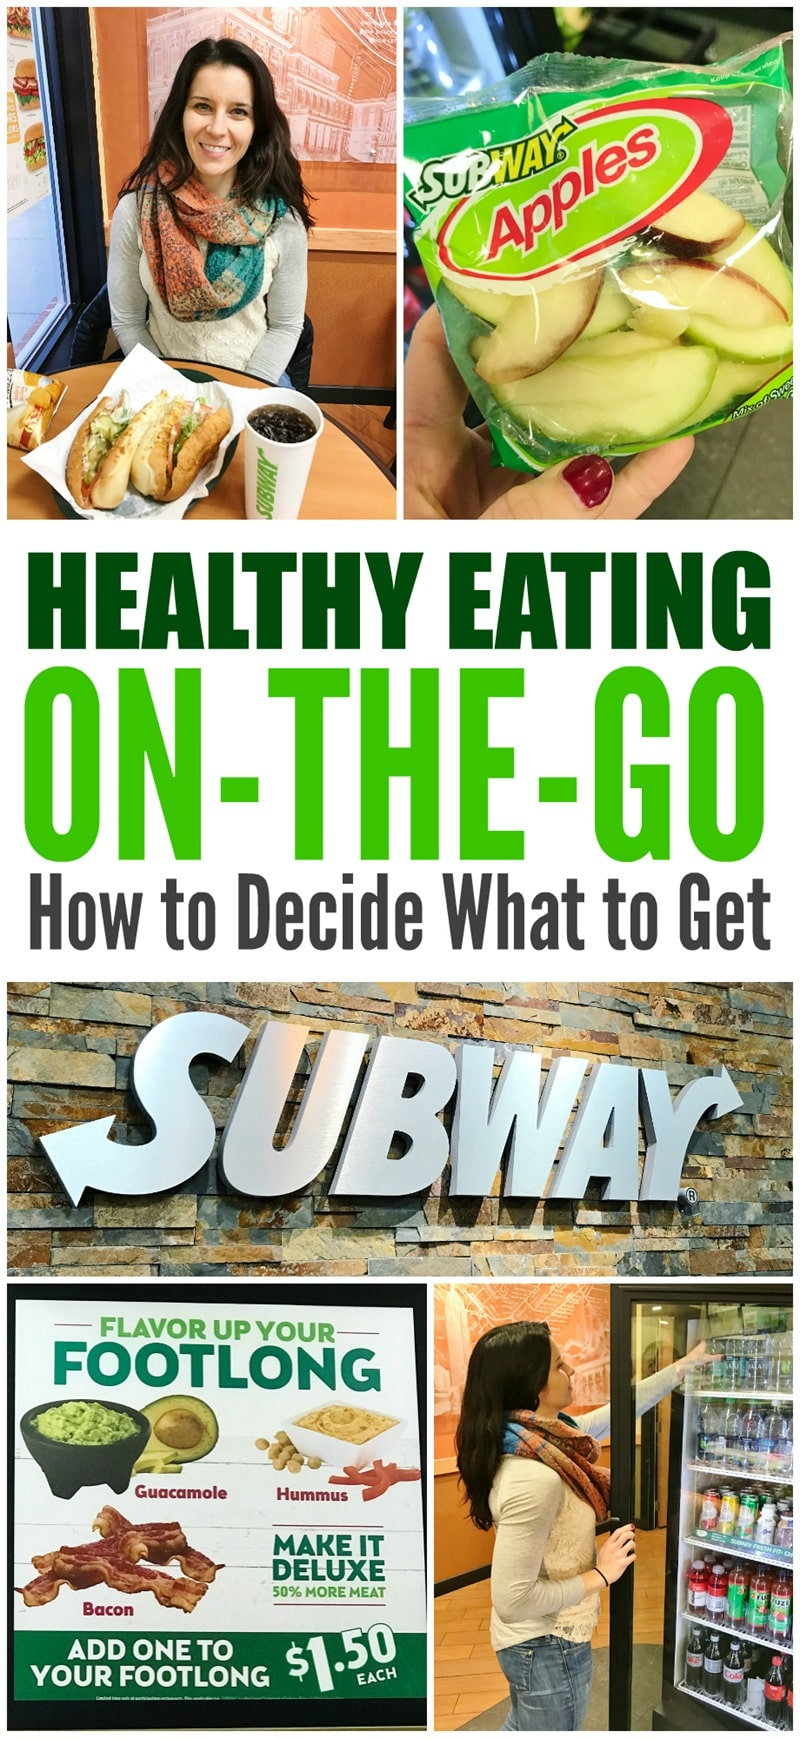 Eat healthy on the go_How to Decide